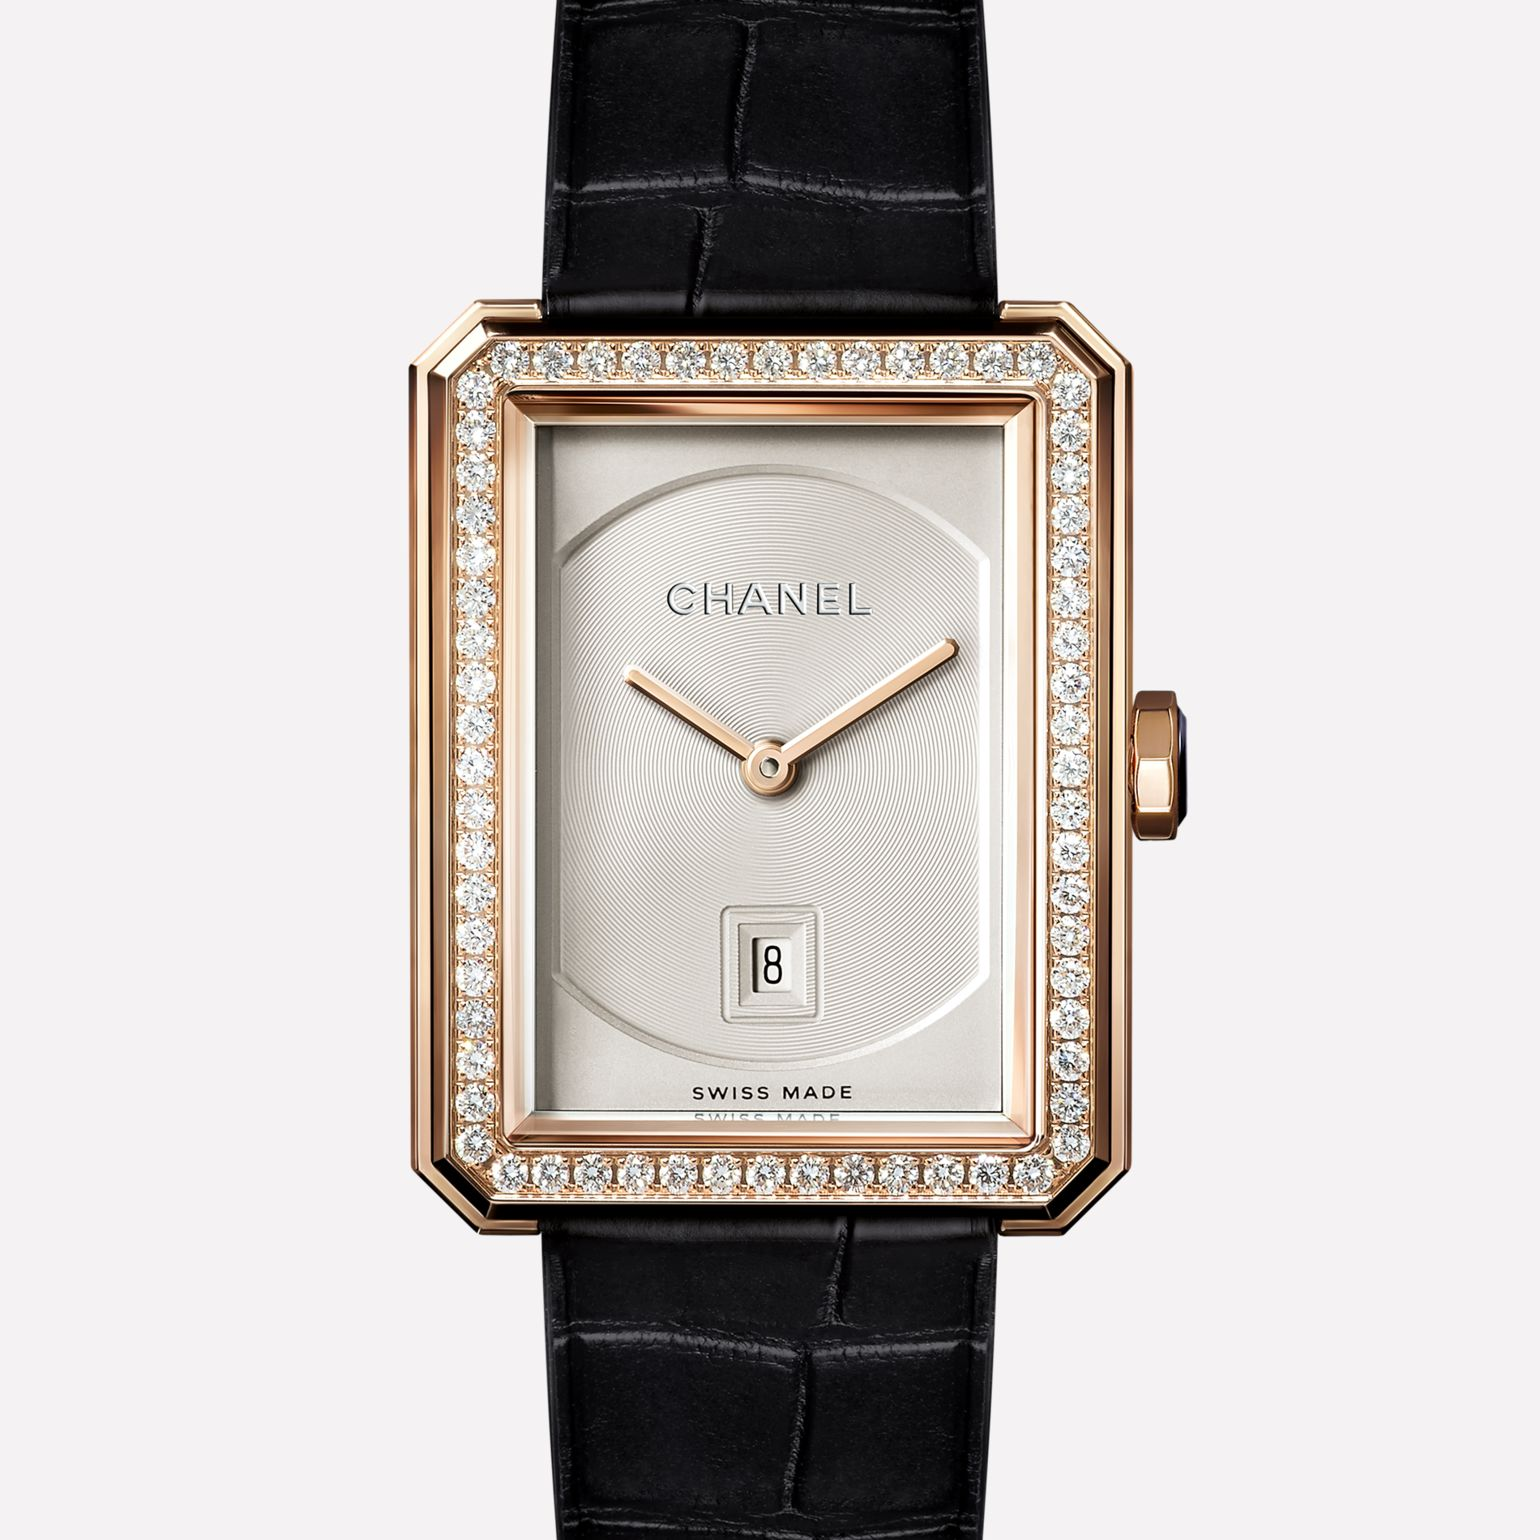 PREMIÈRE∙BOY DE CHANEL Medium version, BEIGE GOLD set with diamonds and alligator strap